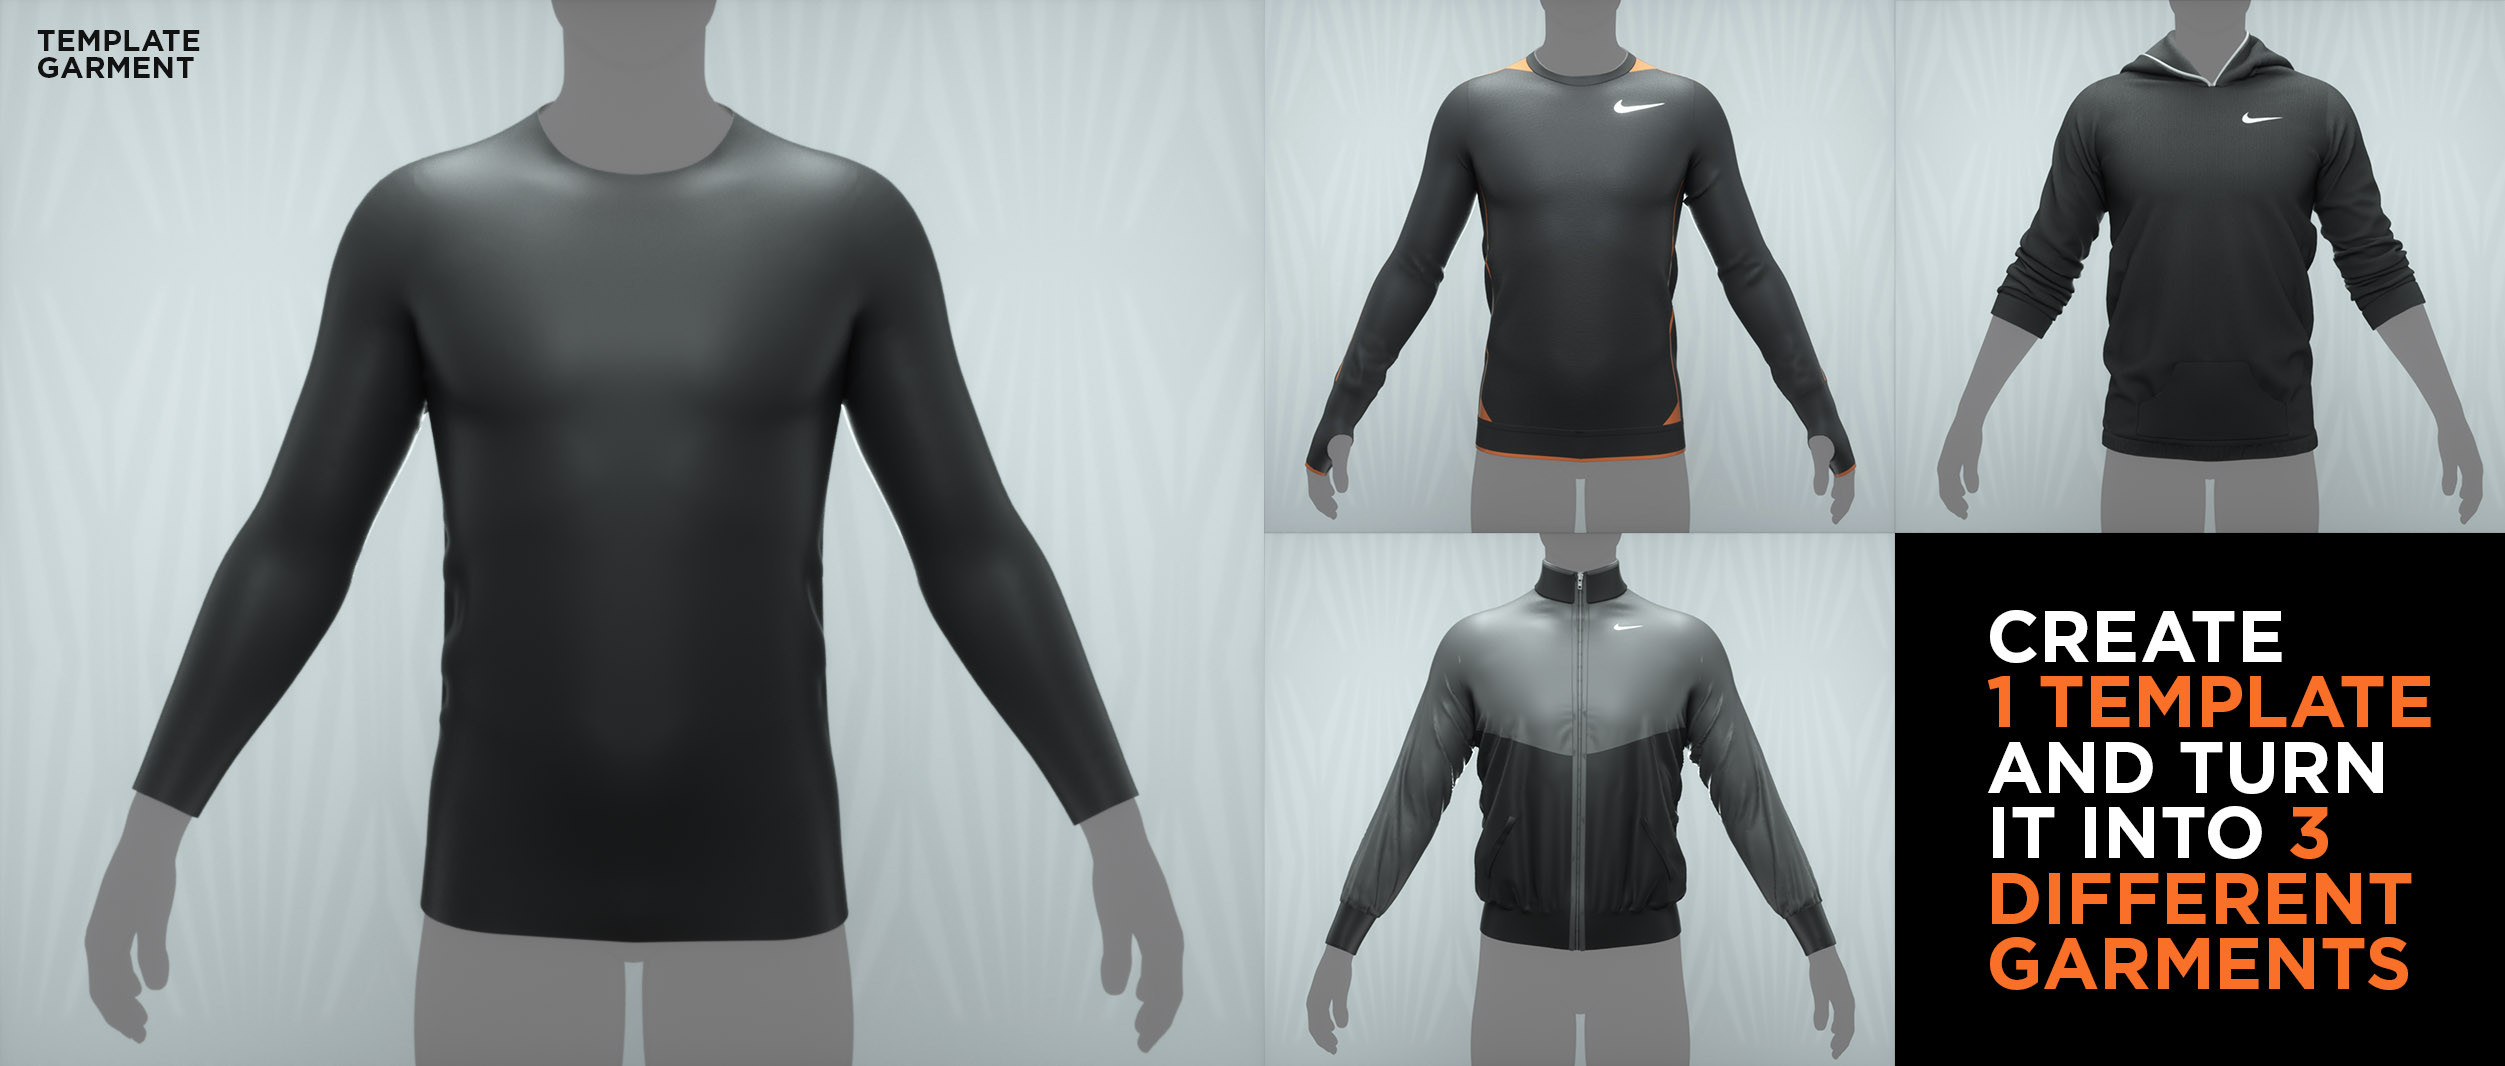 Create a template garment and then turn it into 3 different garments. Building a good foundation and solid base is important and helps with converting the template into different garments easily.